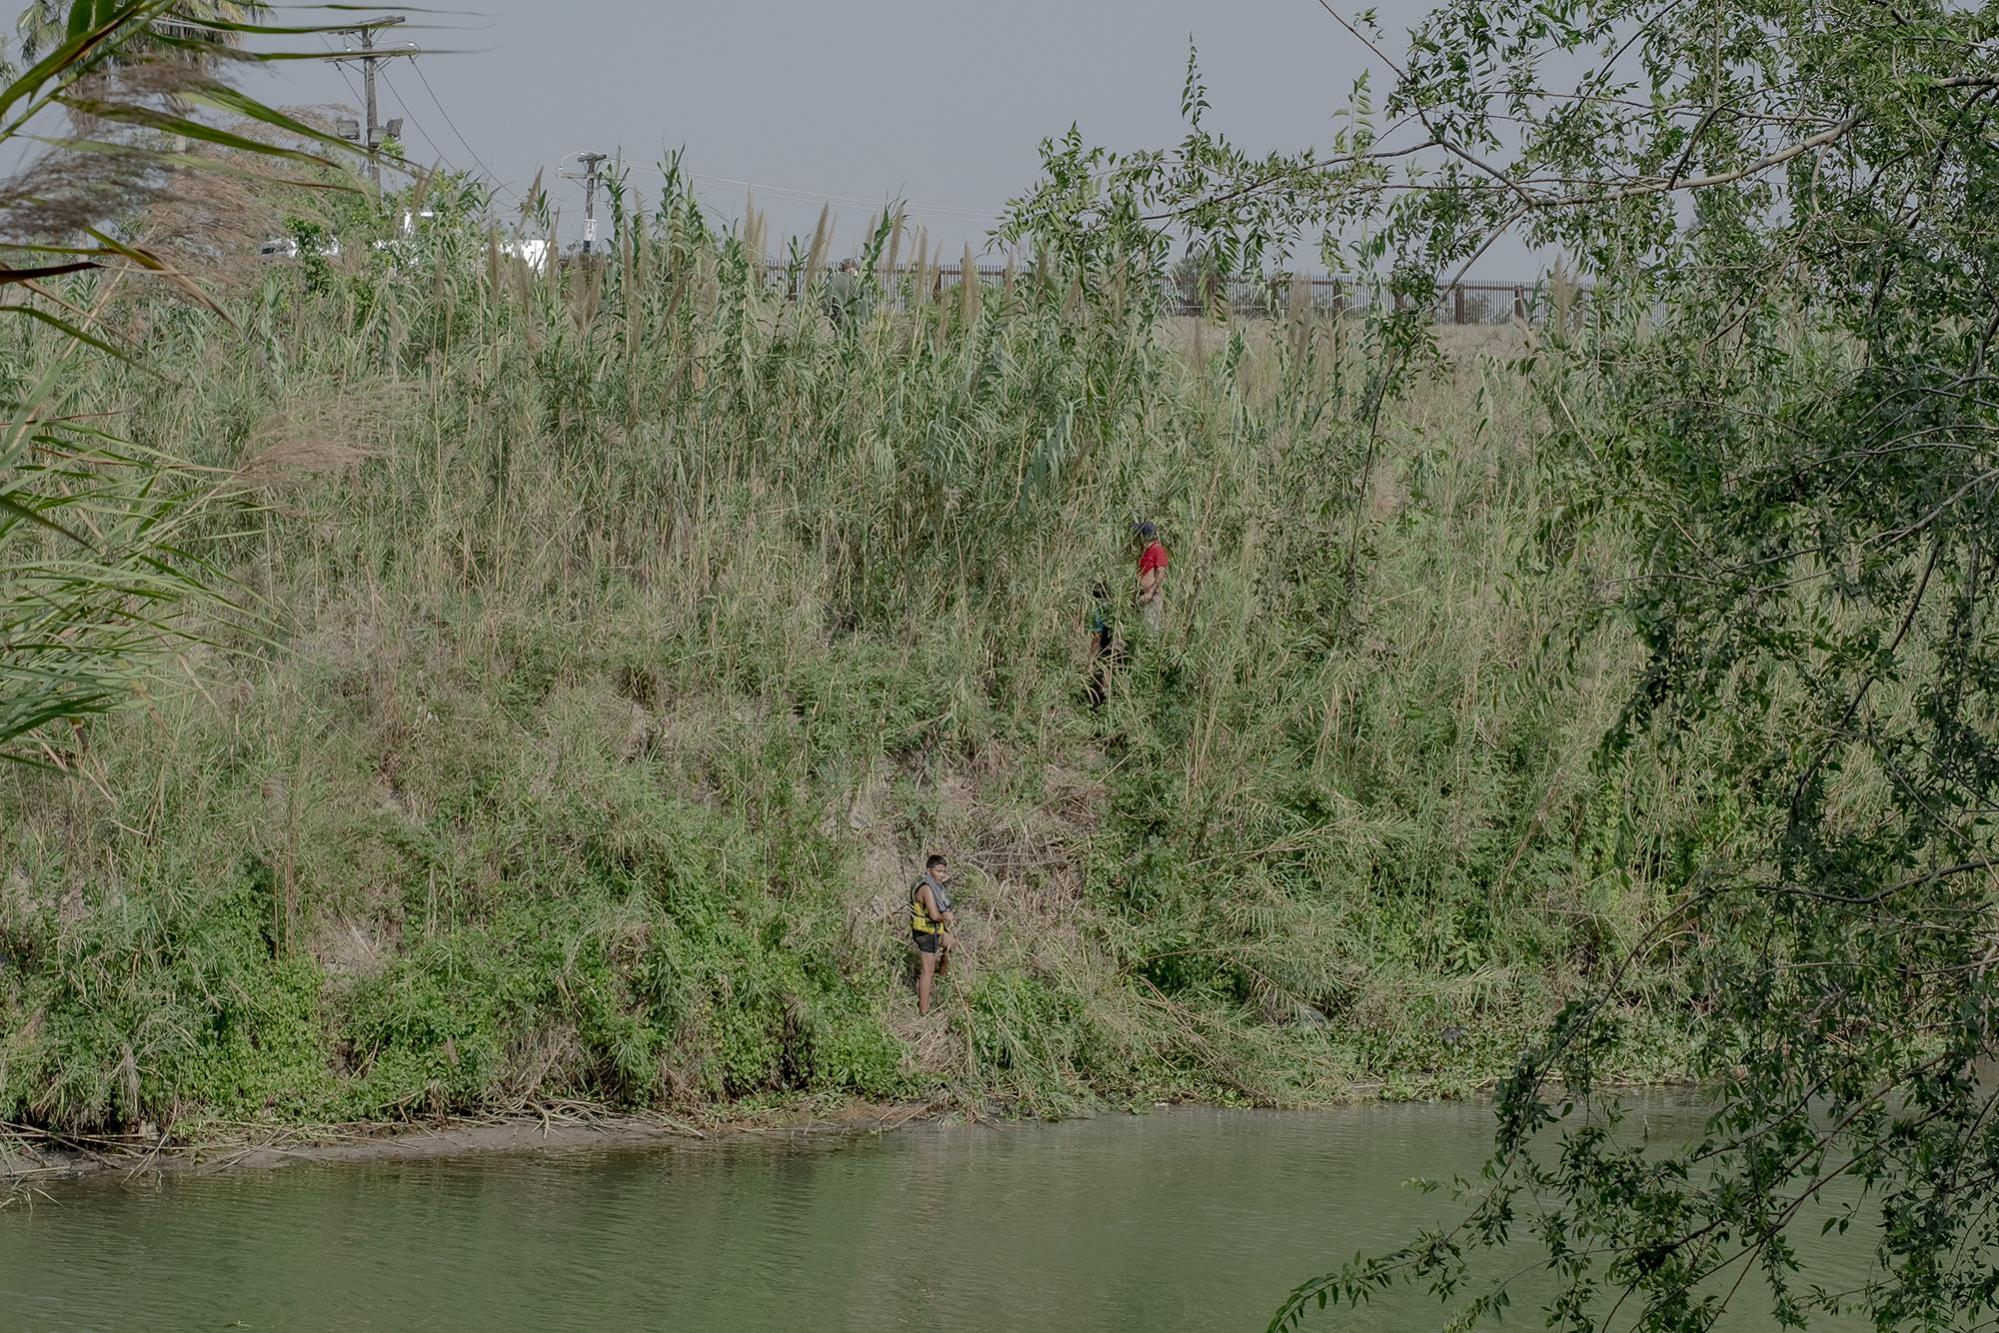 Three migrants attempted to cross the Rio Bravo into the United States by swimming across the river. They did not succeed because they were detected by several U.S. Customs and Border Protection (CBP) border patrols, so they decided to go back to the Mexiccan side. The photo was taken discreetly, as members of the criminal group that controls part of Matamoros were watching the scene from a truck. Less than a mile from here is a commemorative cross by the river where the bodies of Salvadorans Oscar and Valeria, known around the world for drowning while crossing, were found. Photo from El Faro: Fred Ramos.